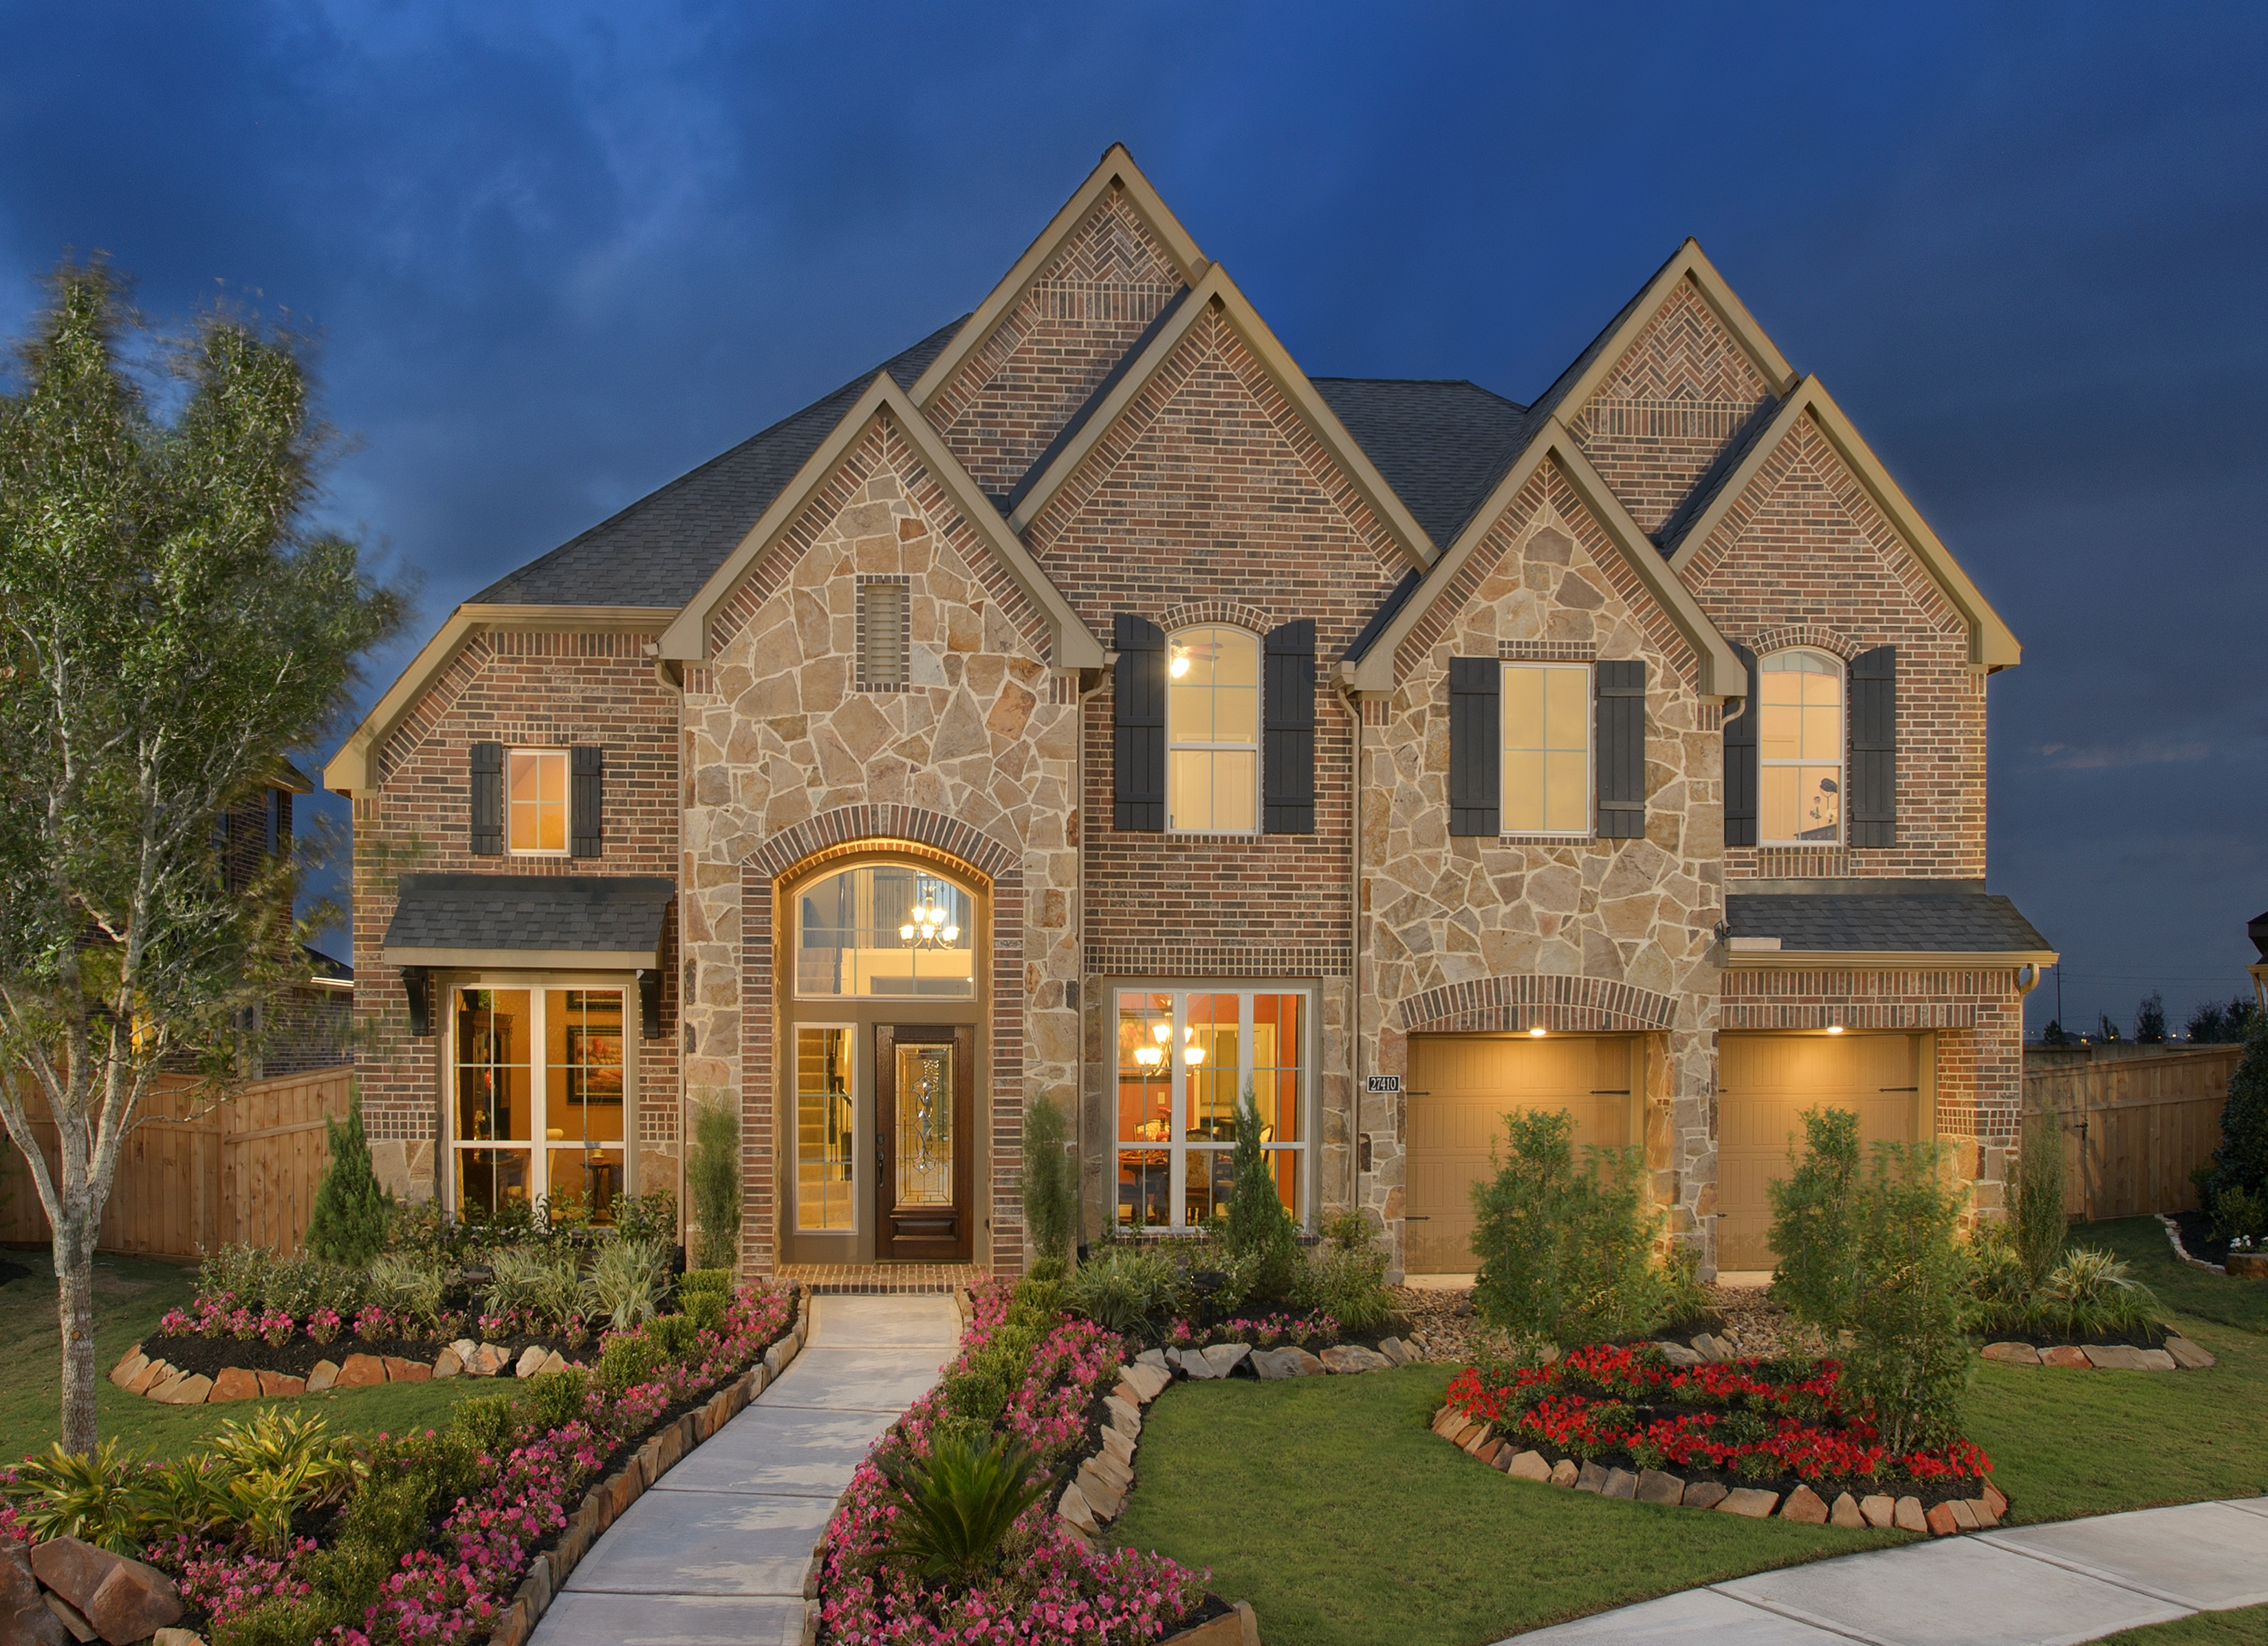 Cross creek ranch new homes in houston new homes in fulshear - House images ...